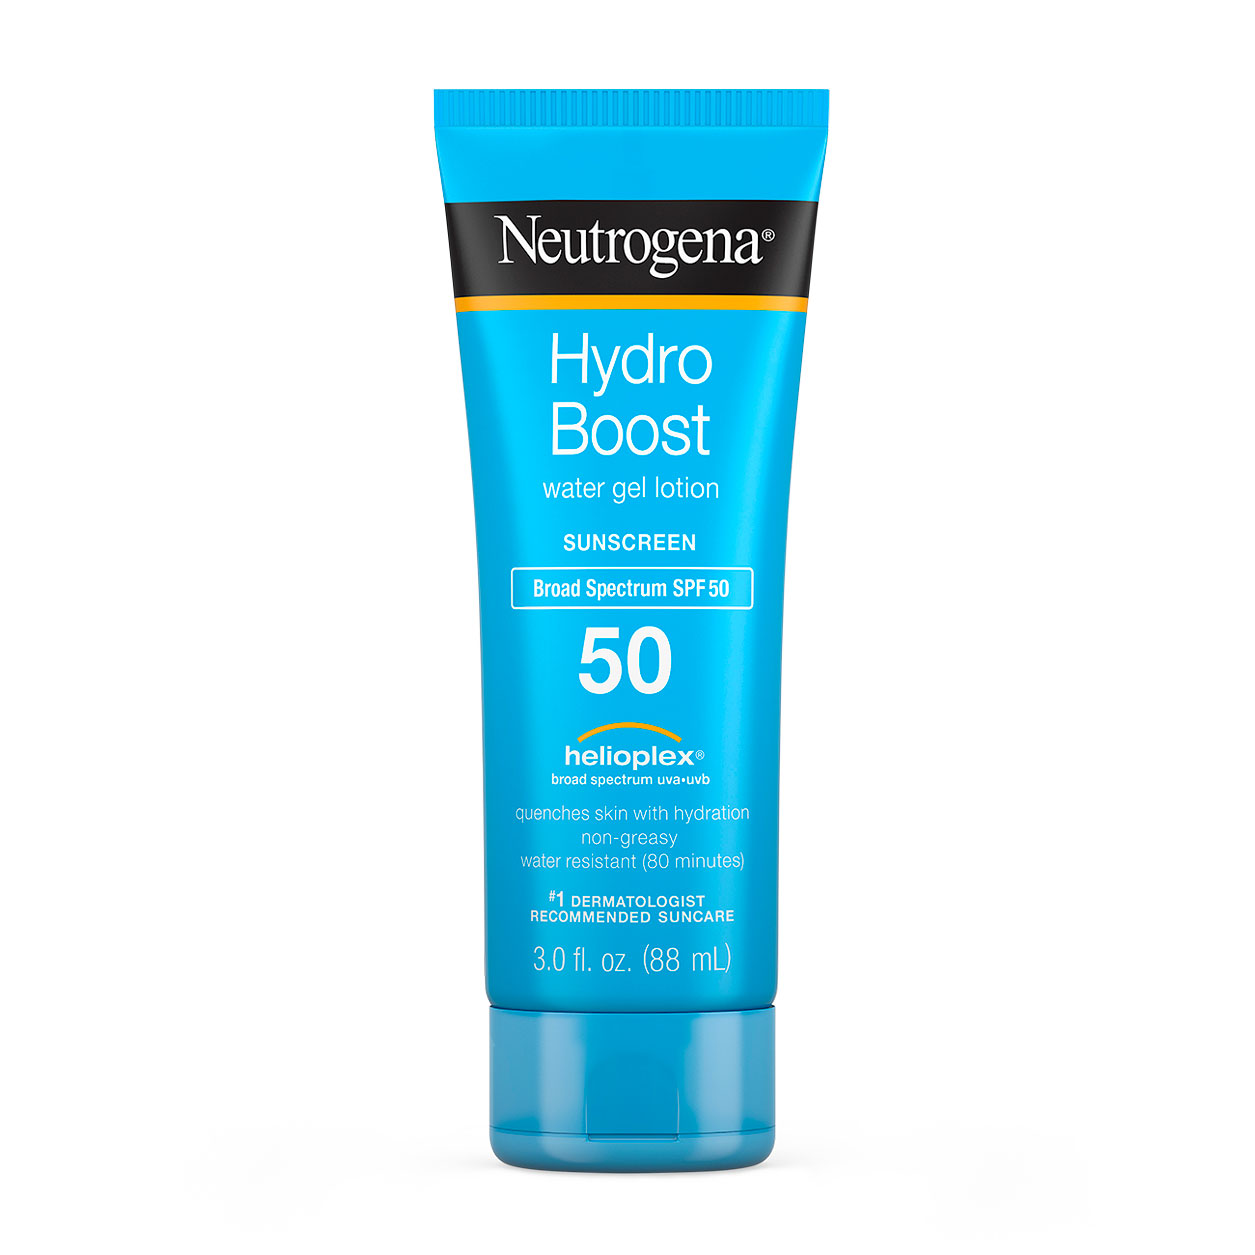 Neutrogena Hydro Boost Water Gel facial moisturizer with sunscreen